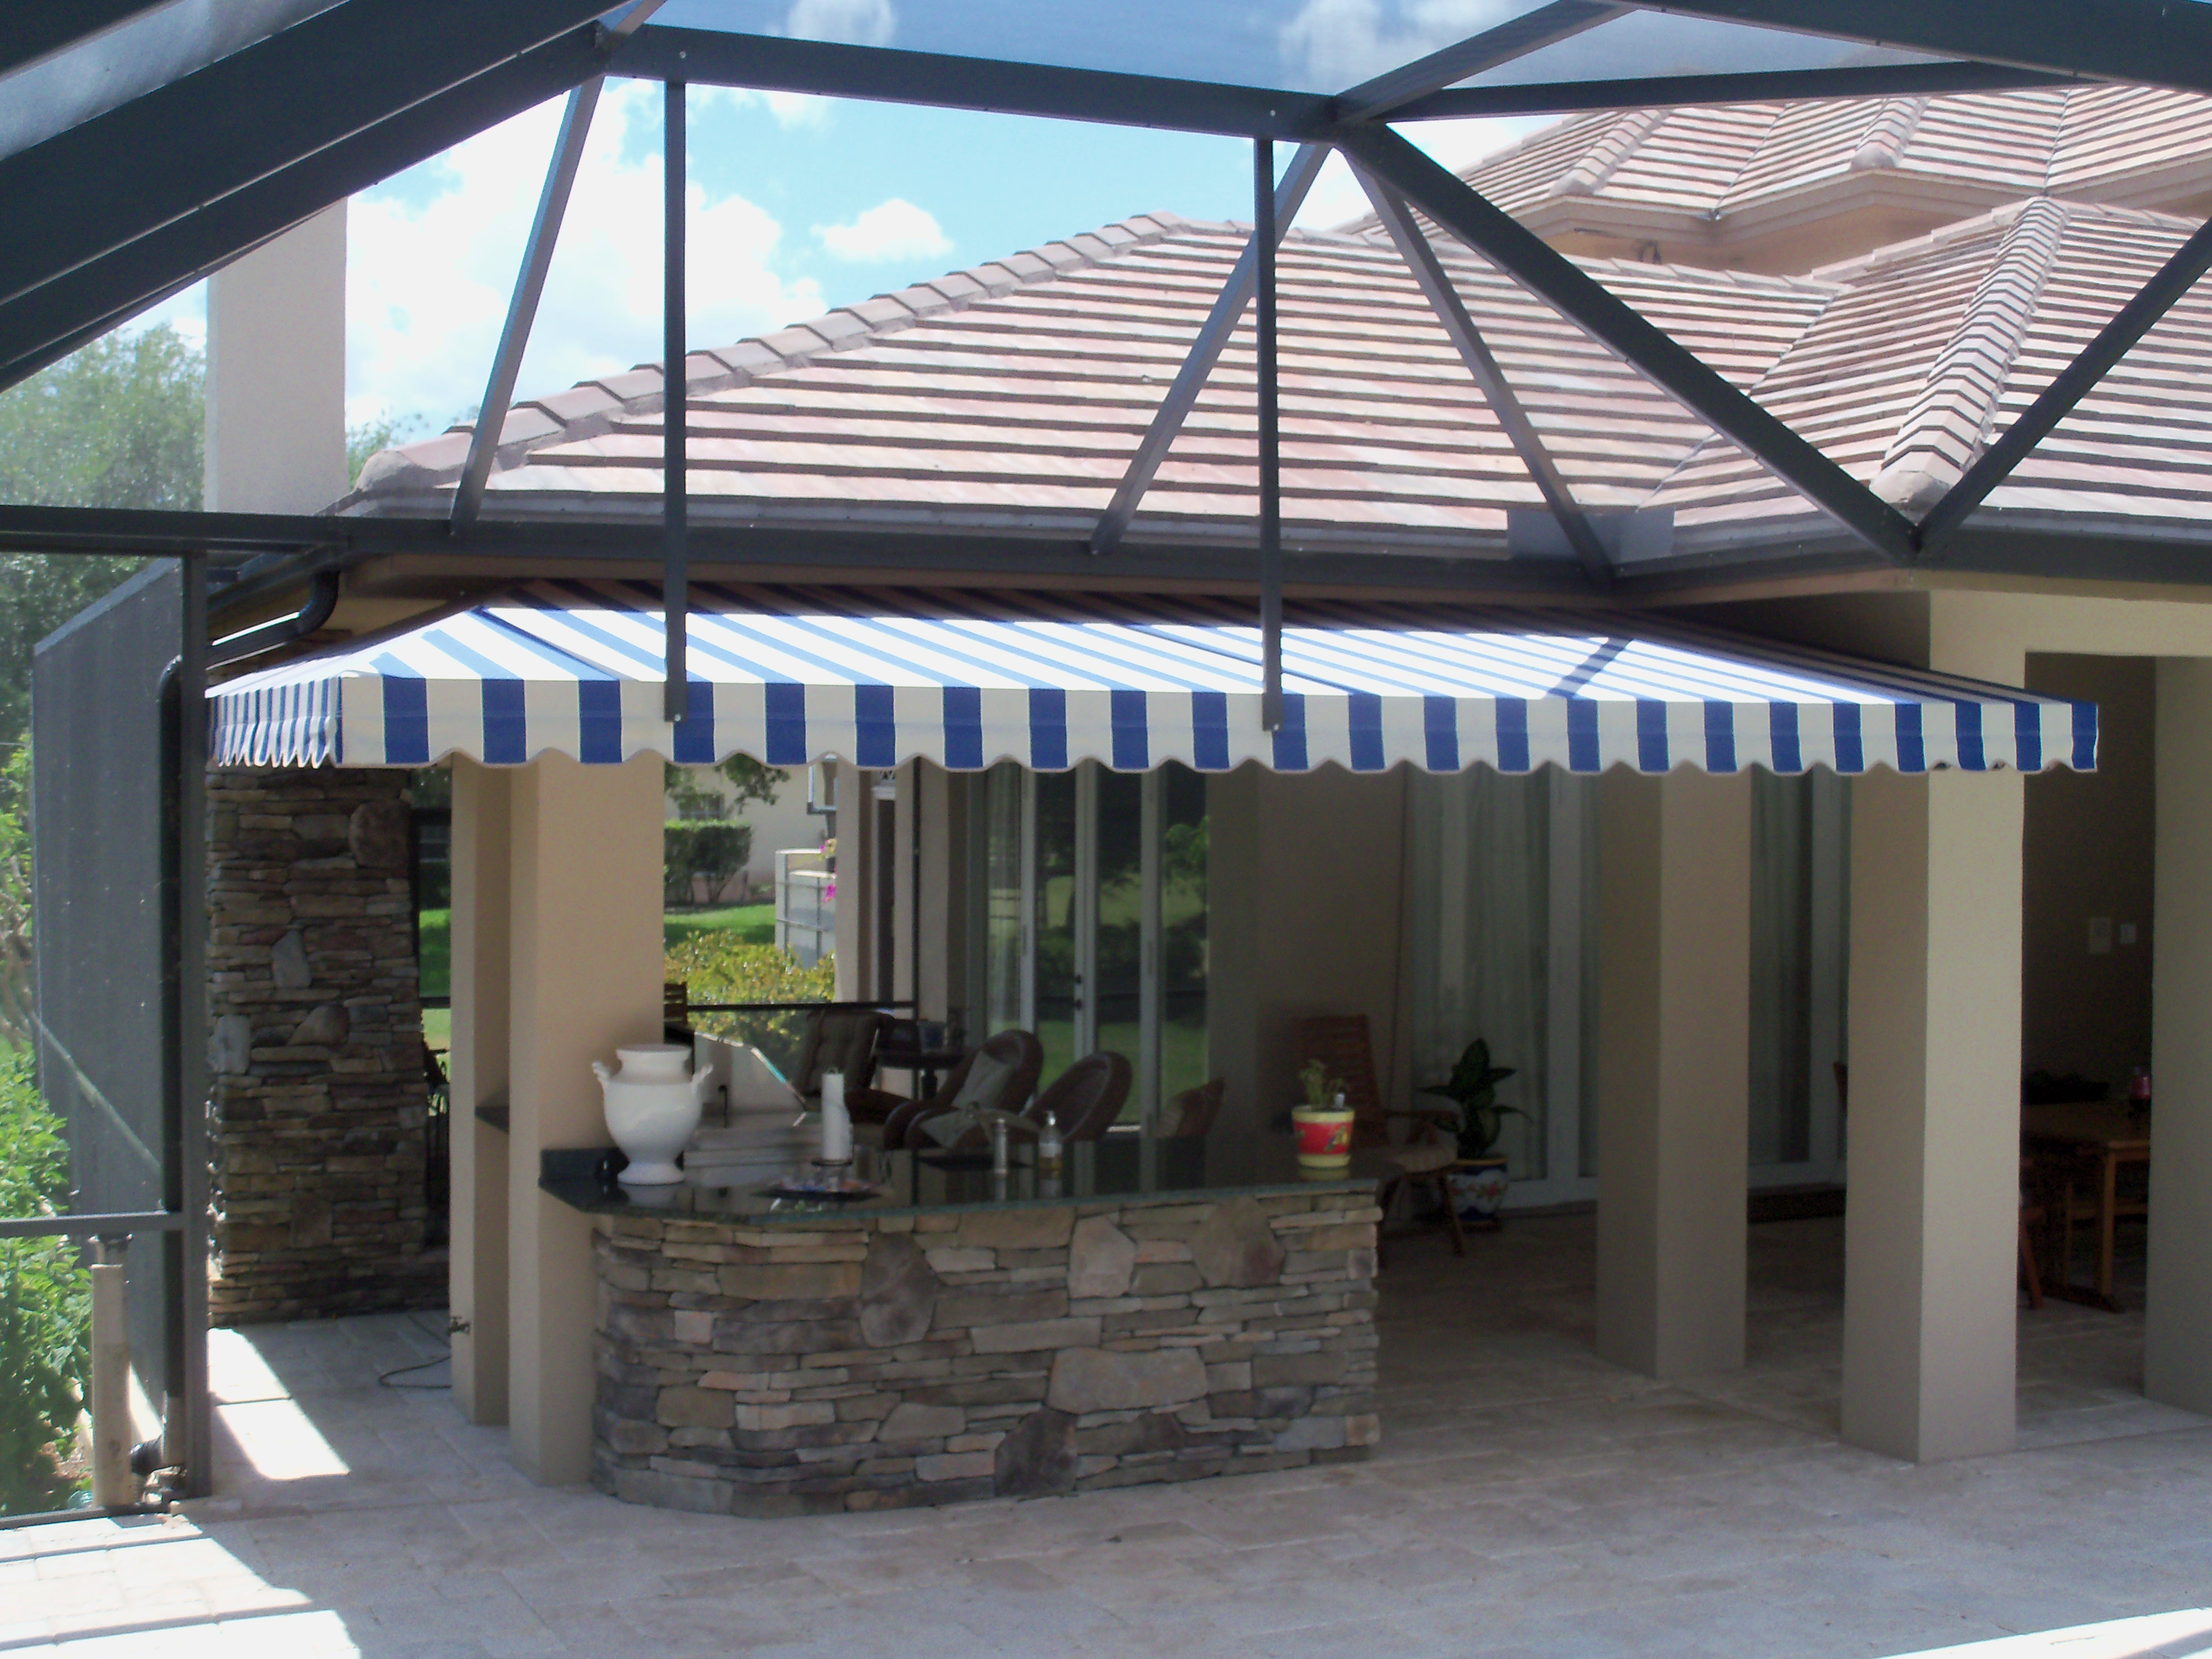 hgtv decks awnings for remodel awning outdoors vinyl